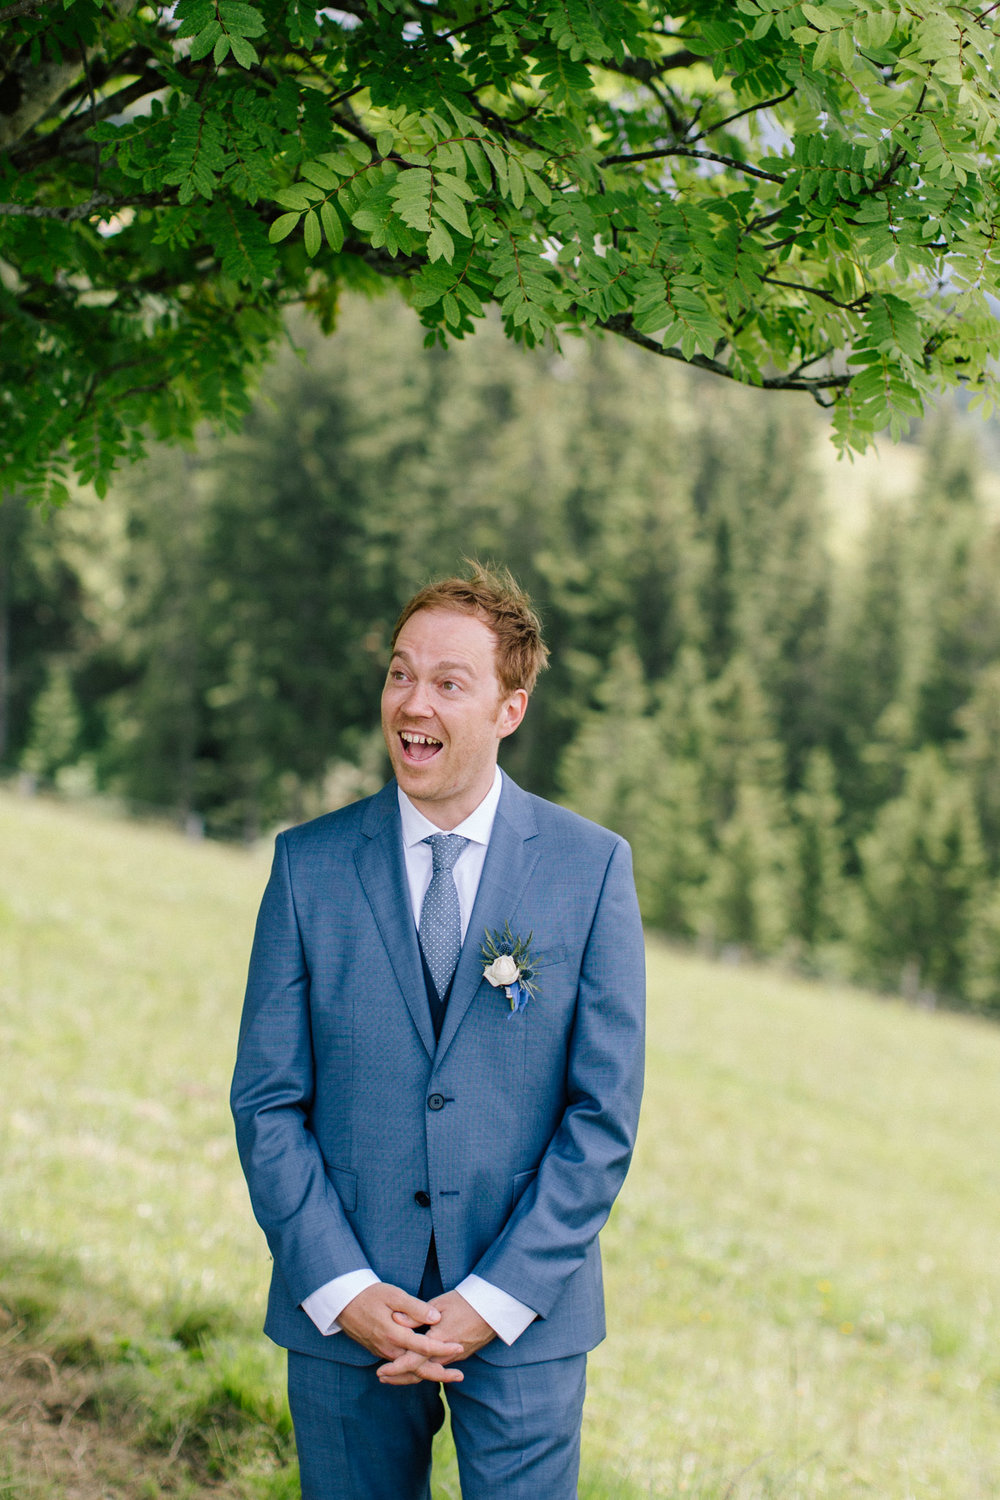 Lenl-Simmental-Buehlerhof-Pia-Anna-Christian-Wedding-Photography-EK-32.jpg